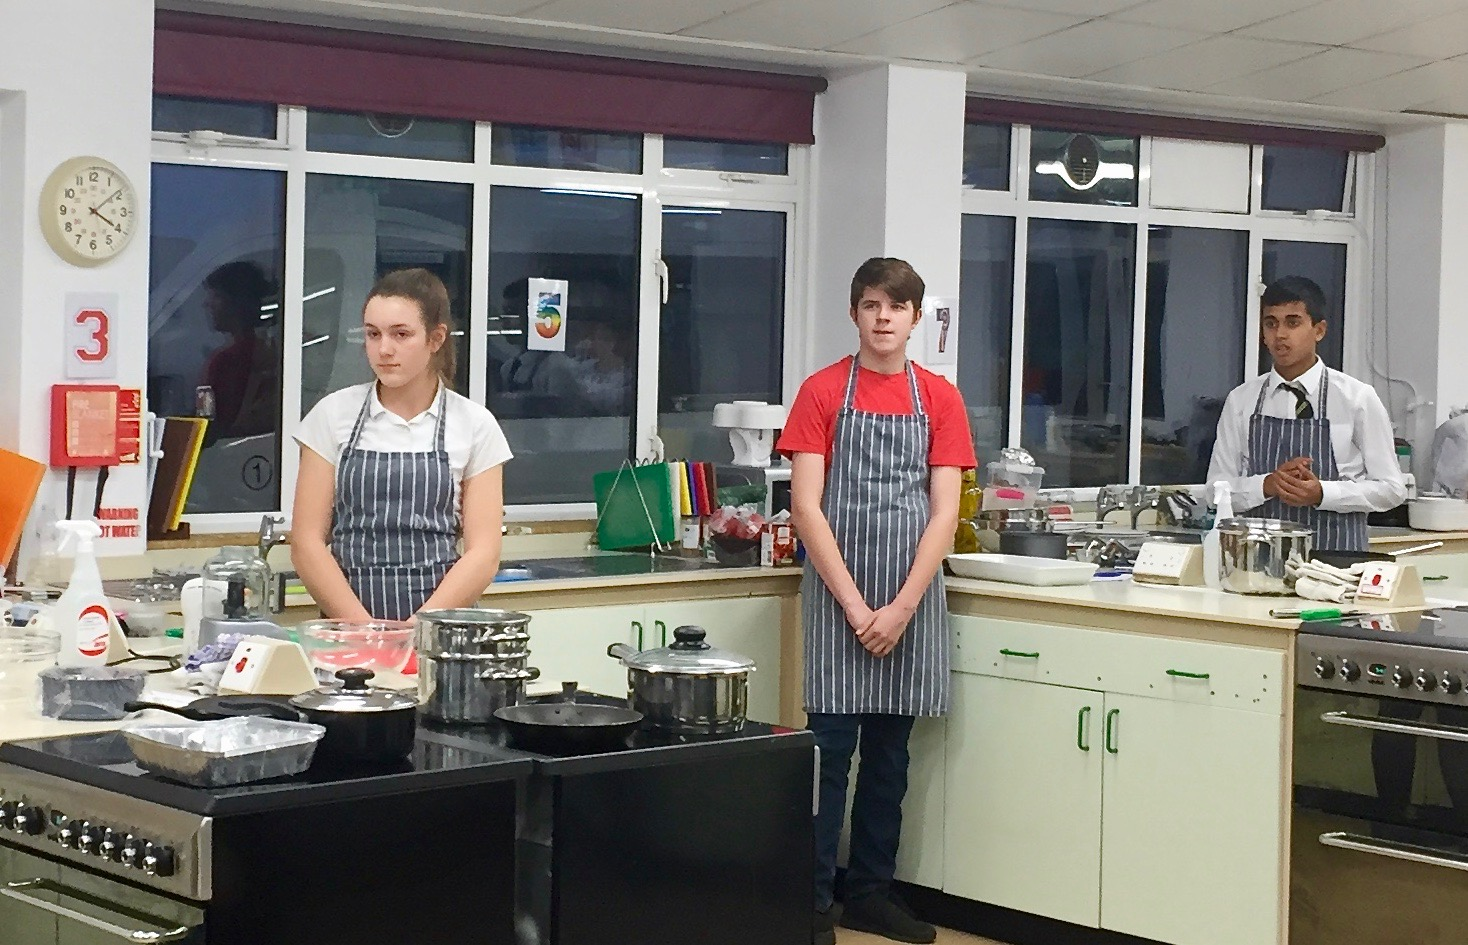 Local Students Cook Up a Storm